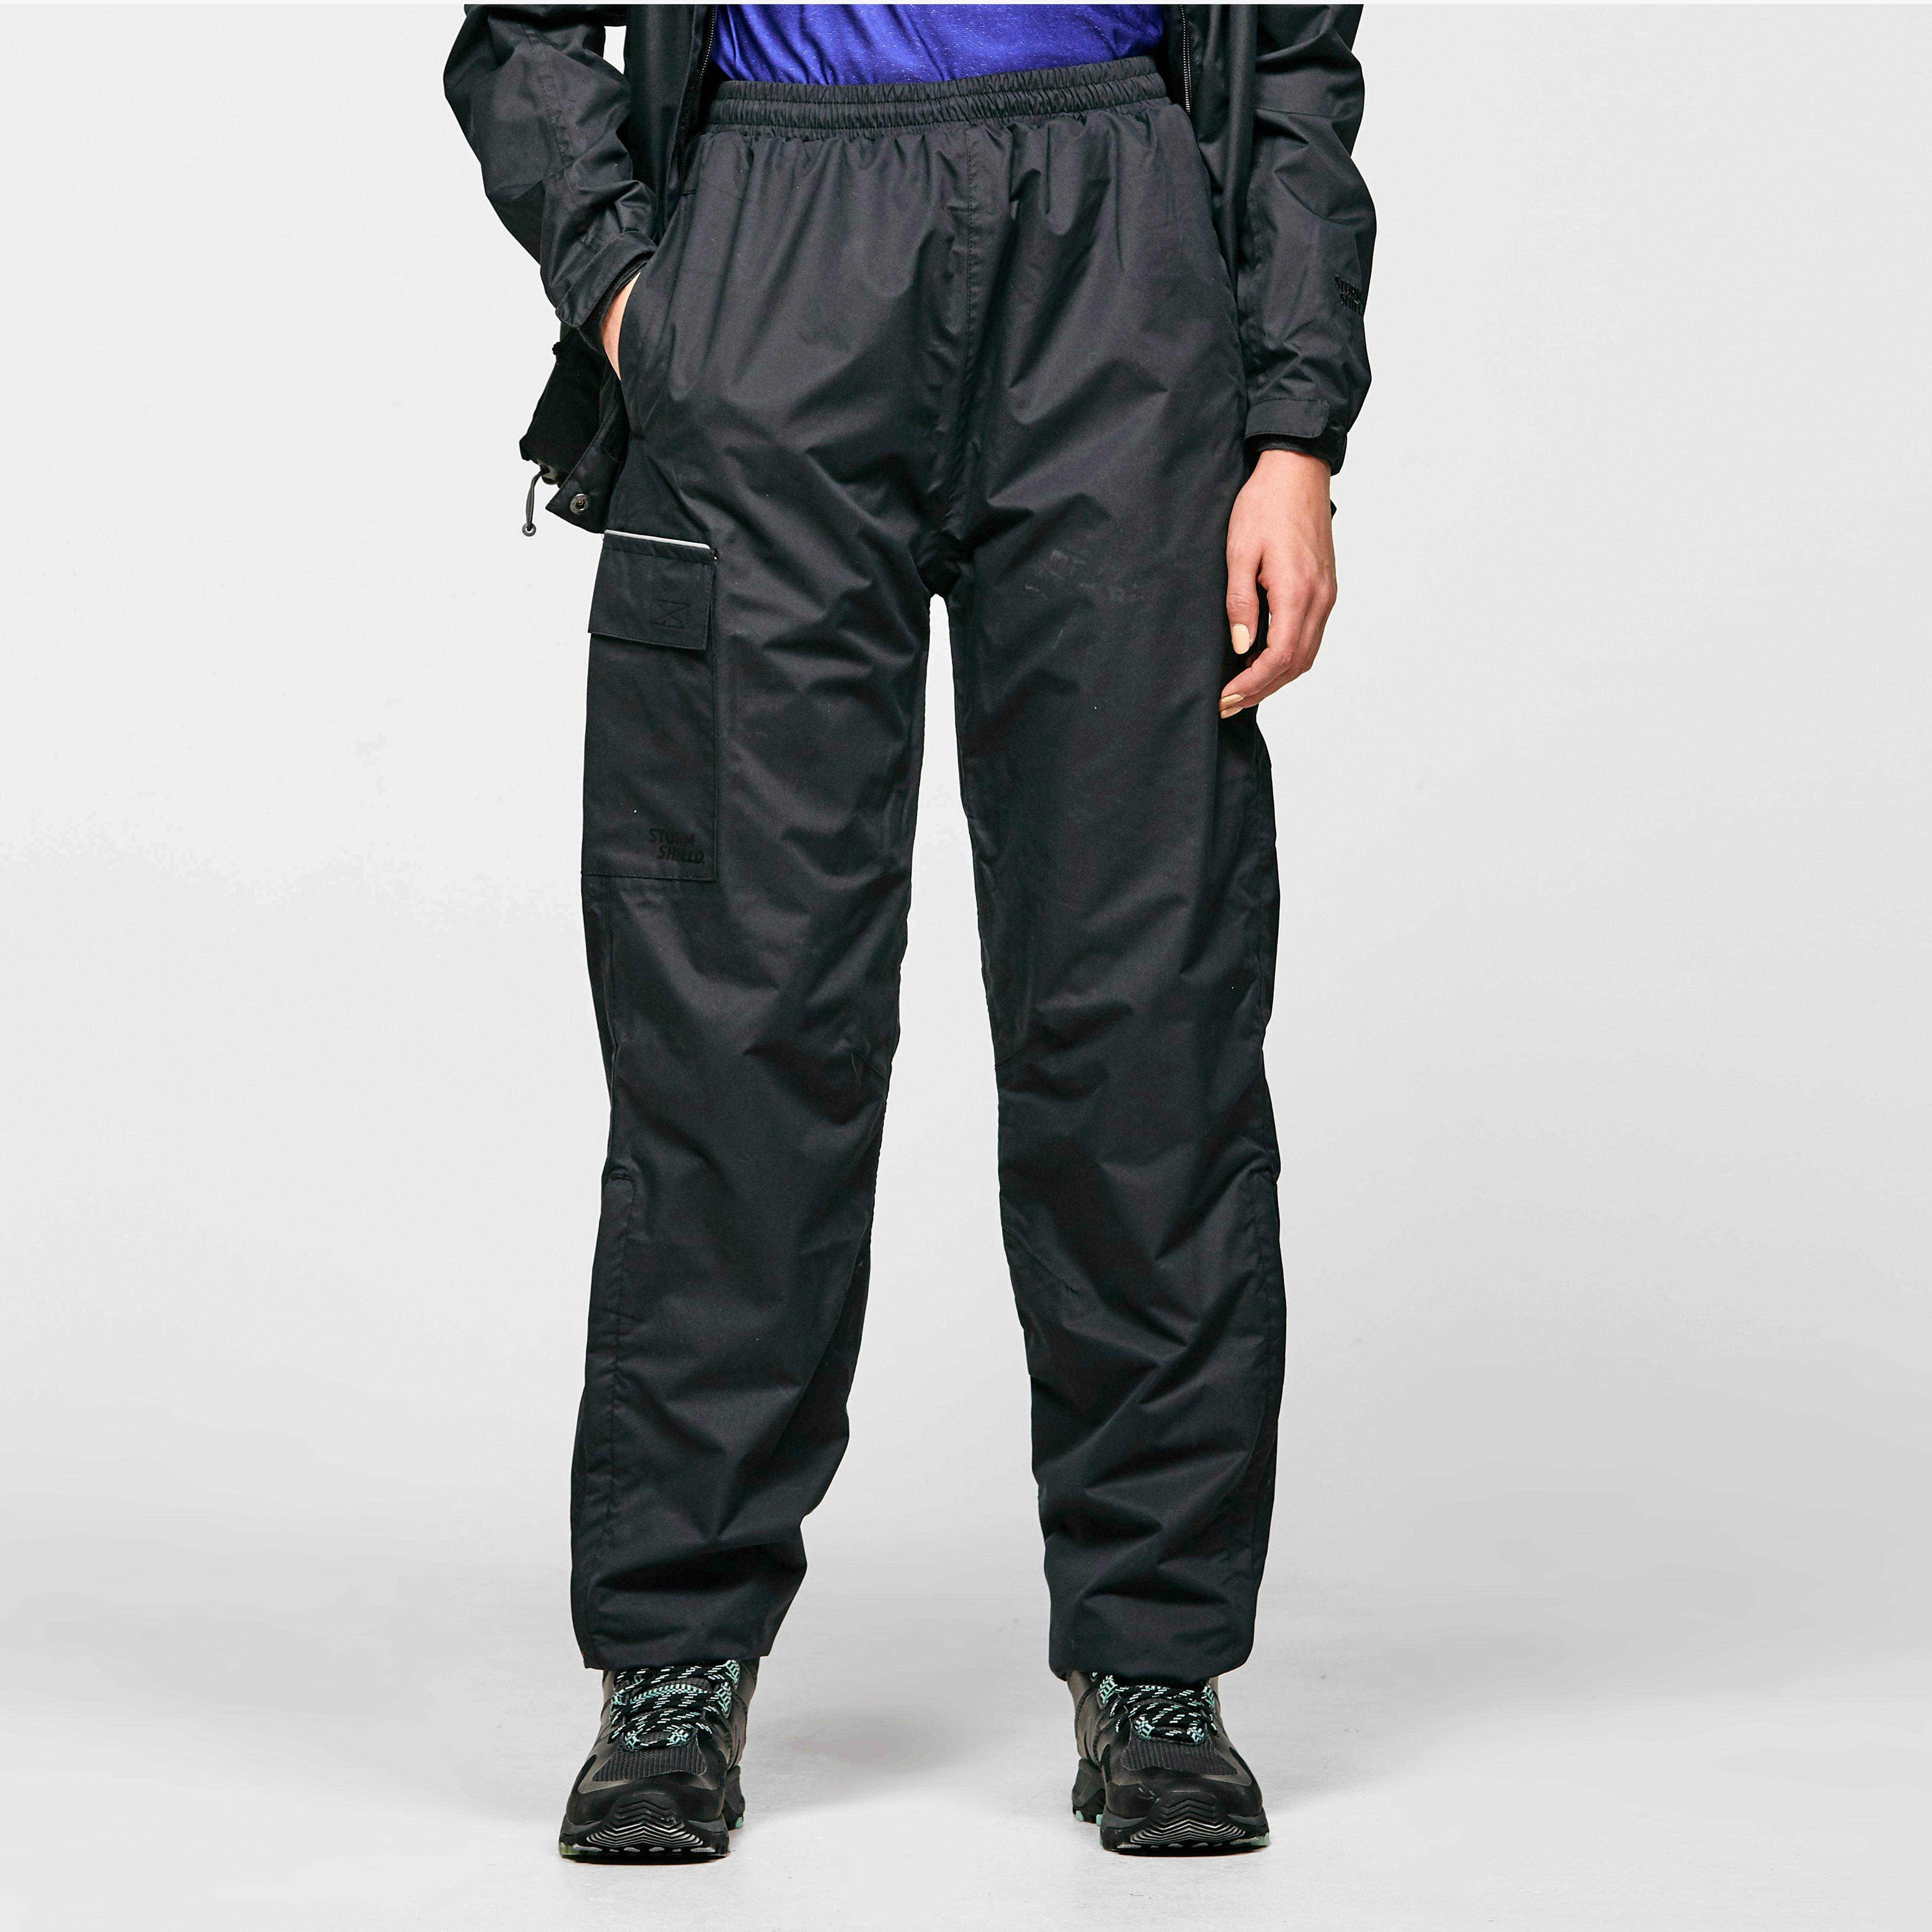 Peter Storm Womens Tempest Waterproof Trousers